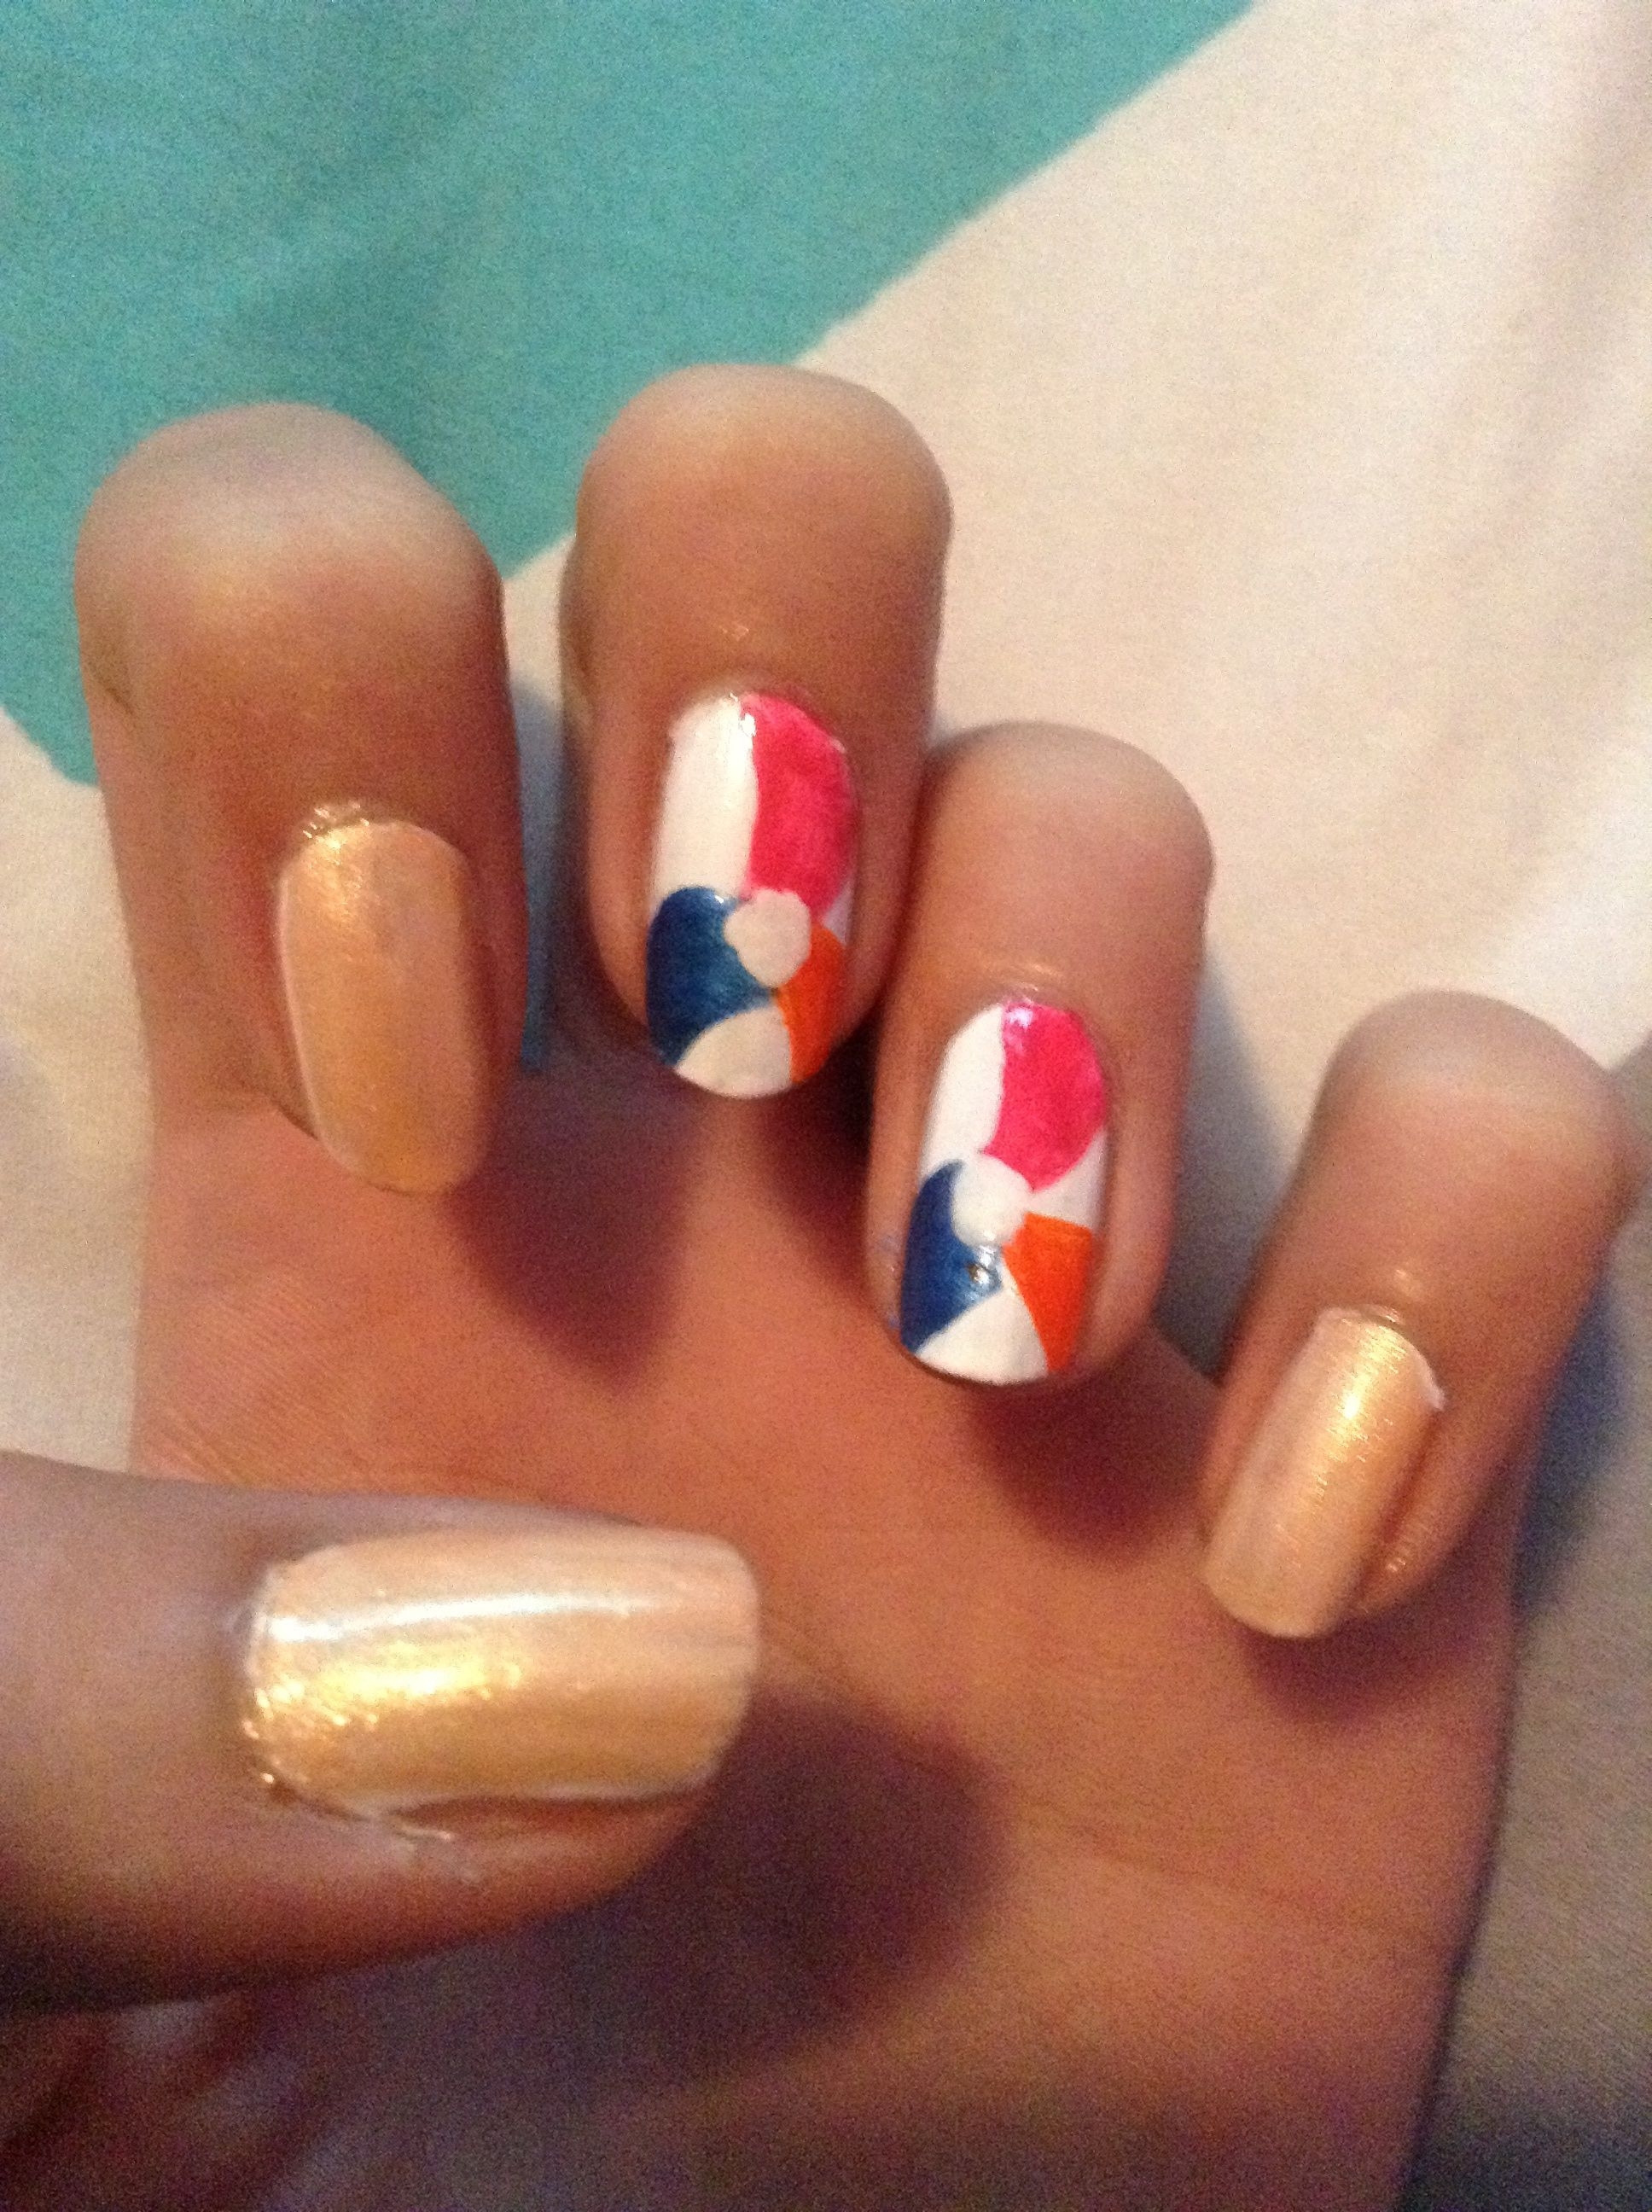 This beach ball nail design is again inspired by Missjenfabulous and it is pretty easy! I love this nail design for the summer!